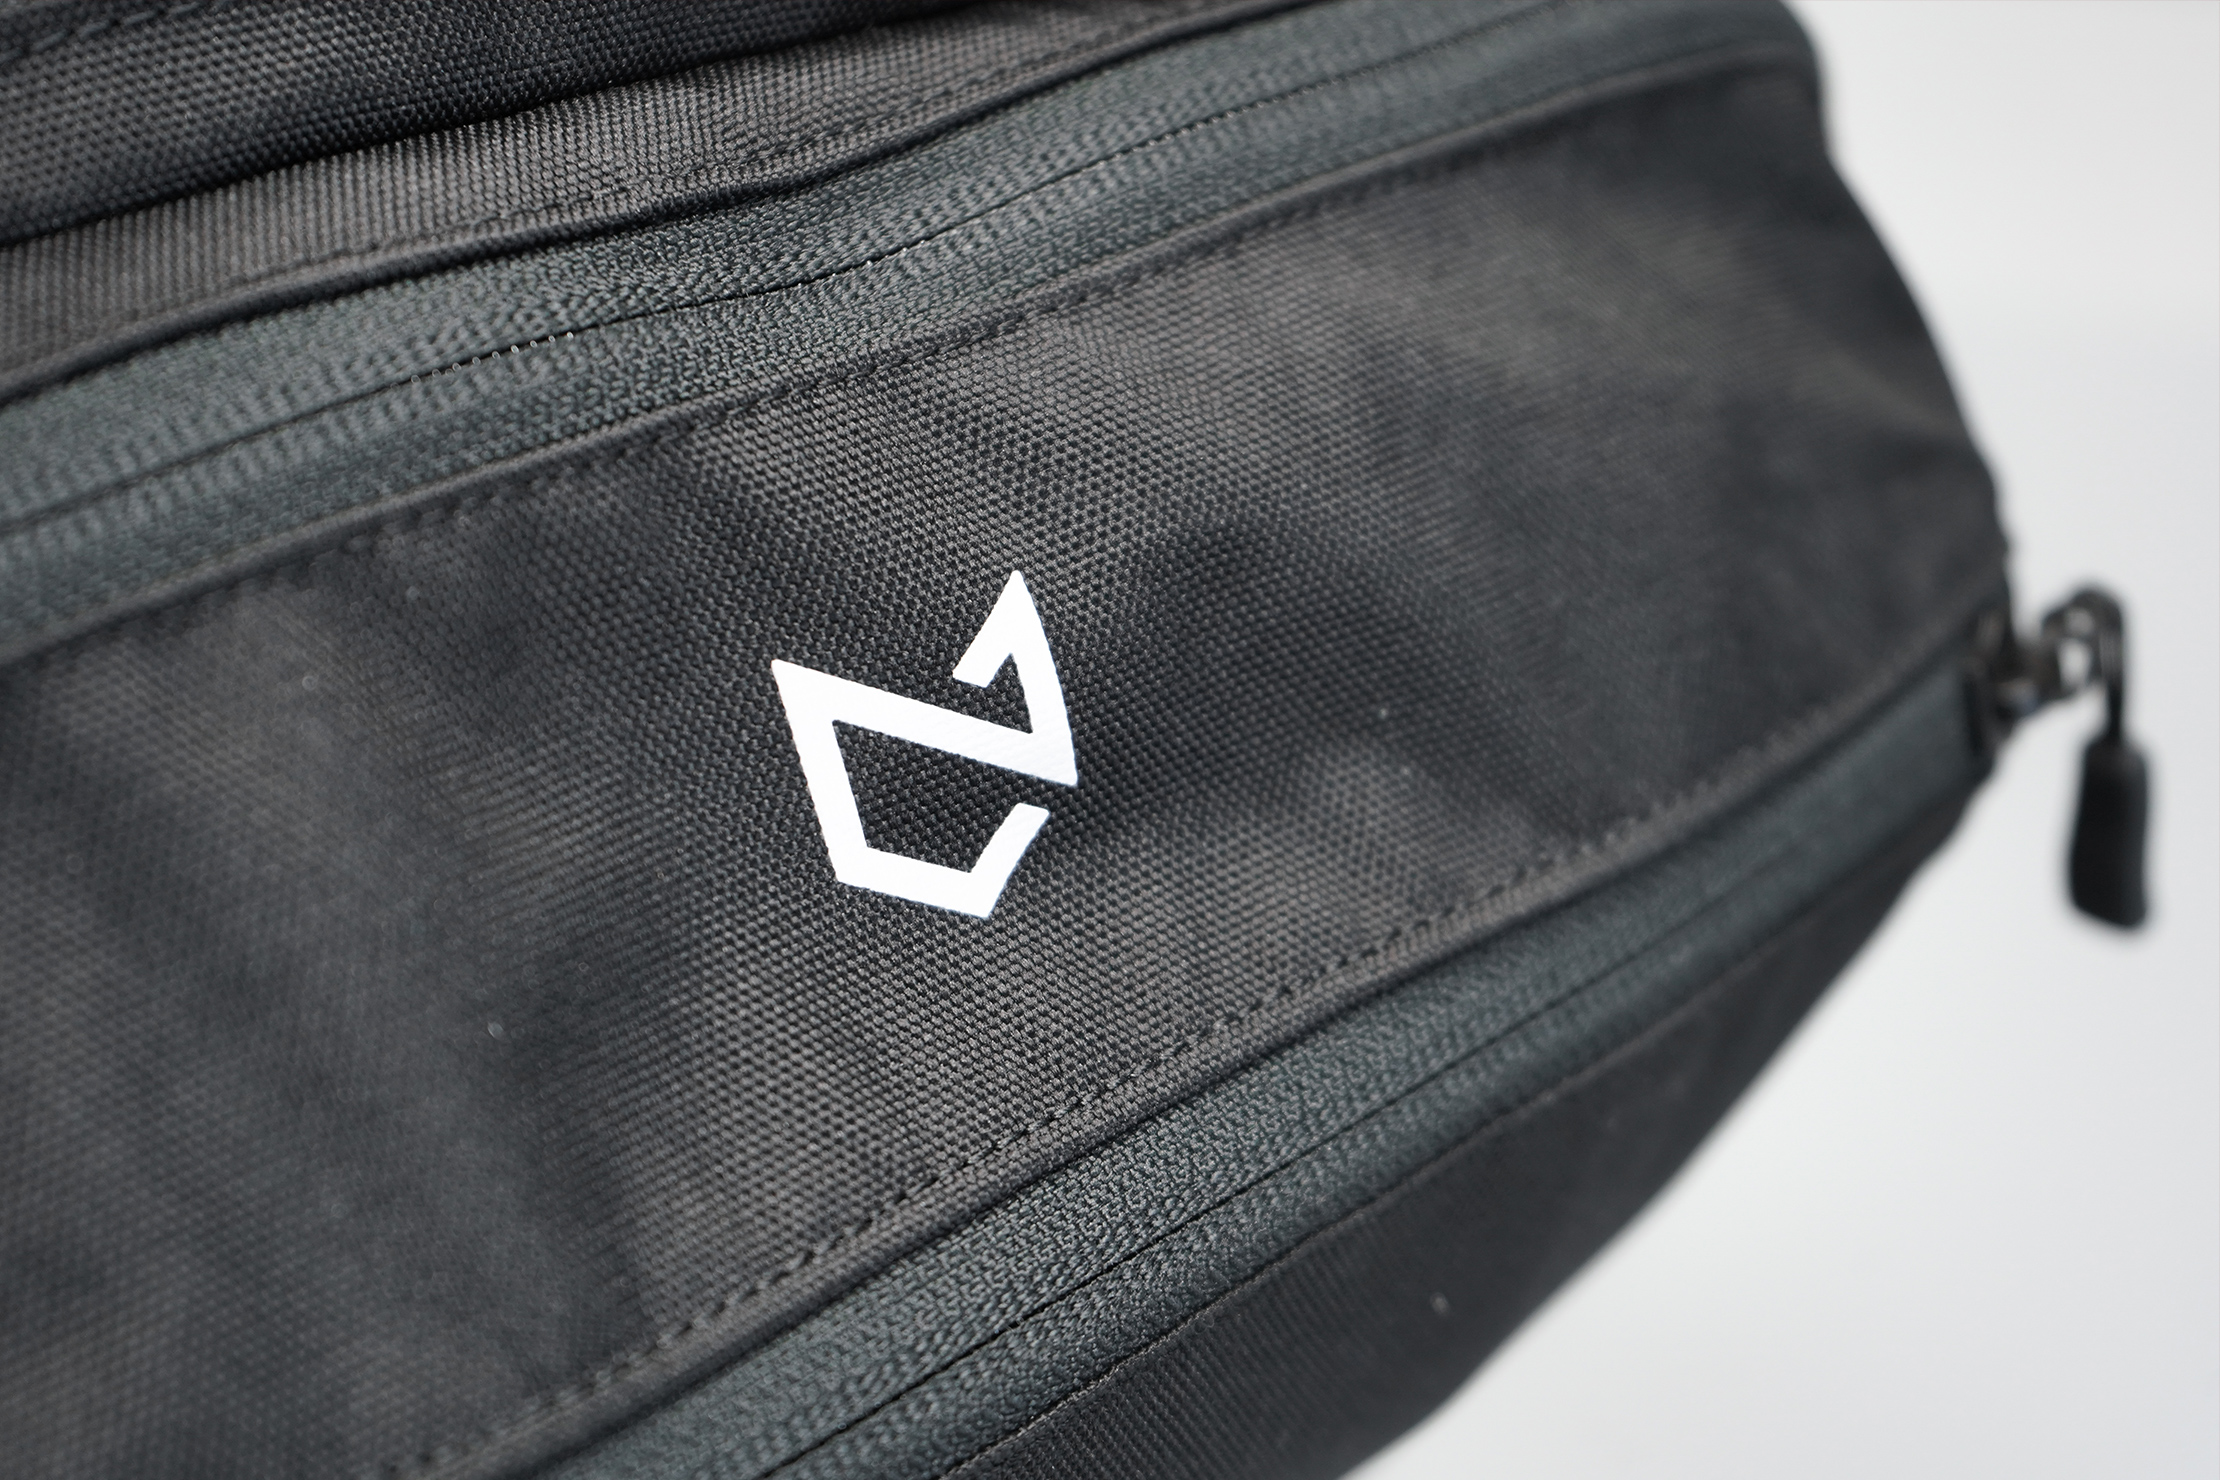 Minaal Daily 3.0 Bag Material and Logo